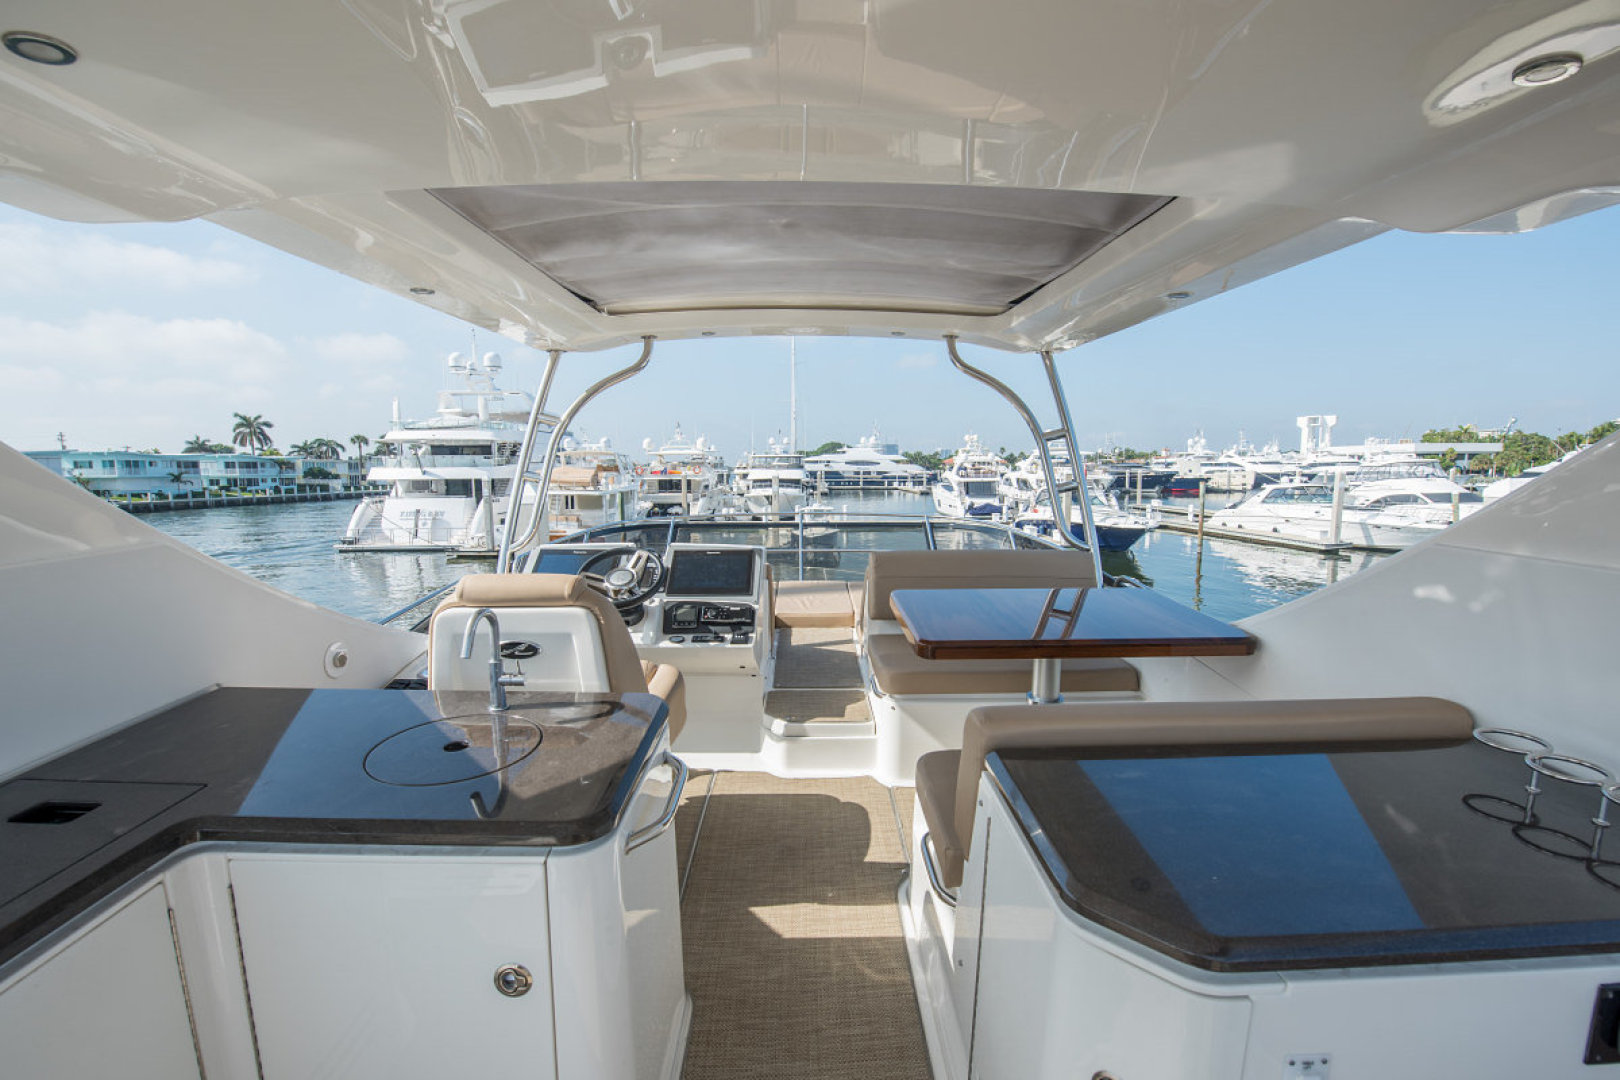 Sea Ray-L590 Fly 2016-2016 Sea Ray L590 Fly Ft. Lauderdale-Florida-United States-1284603 | Thumbnail